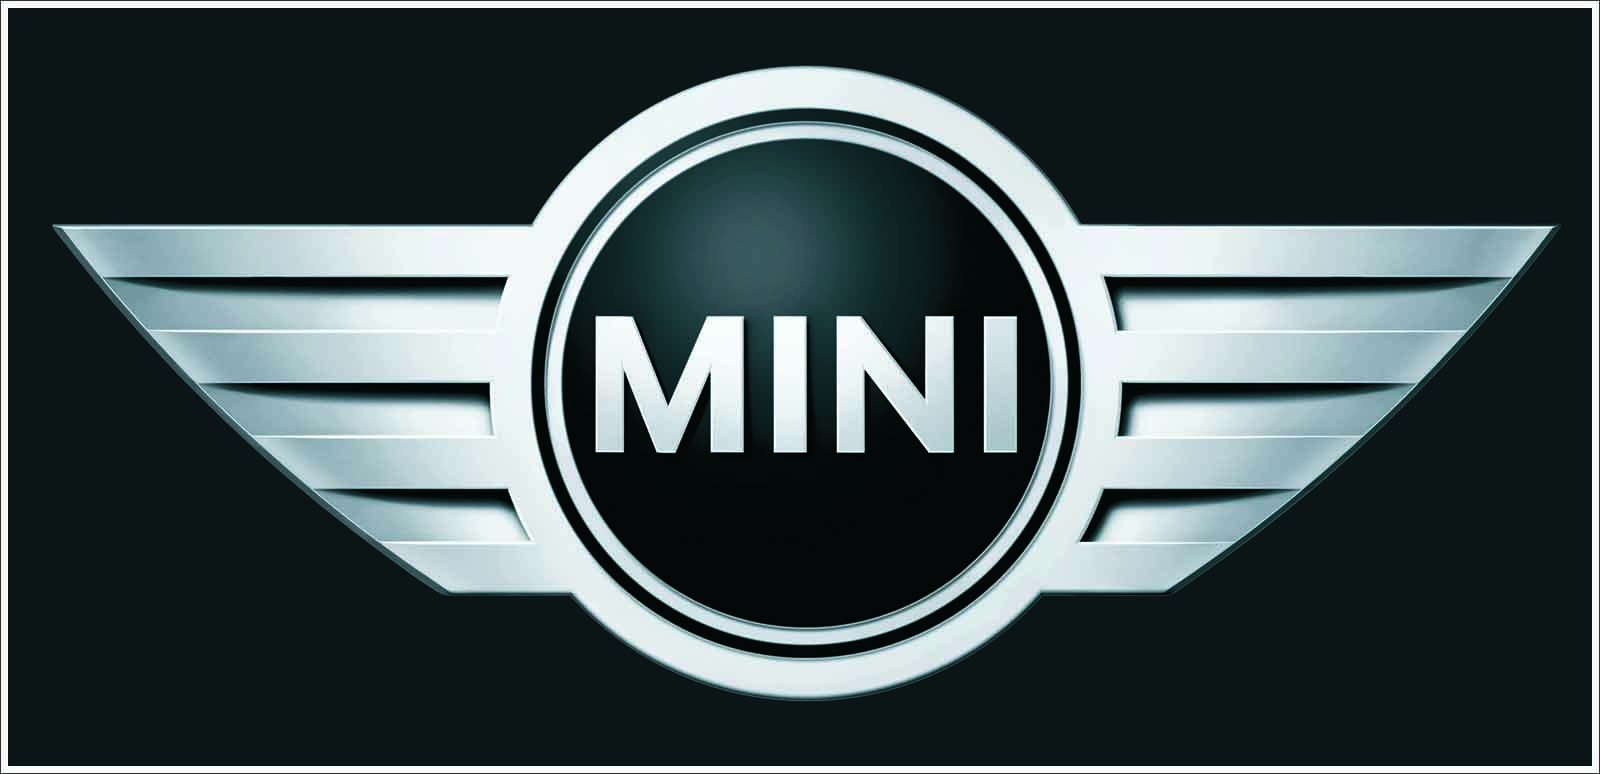 Mini Black Logo Wallpaper